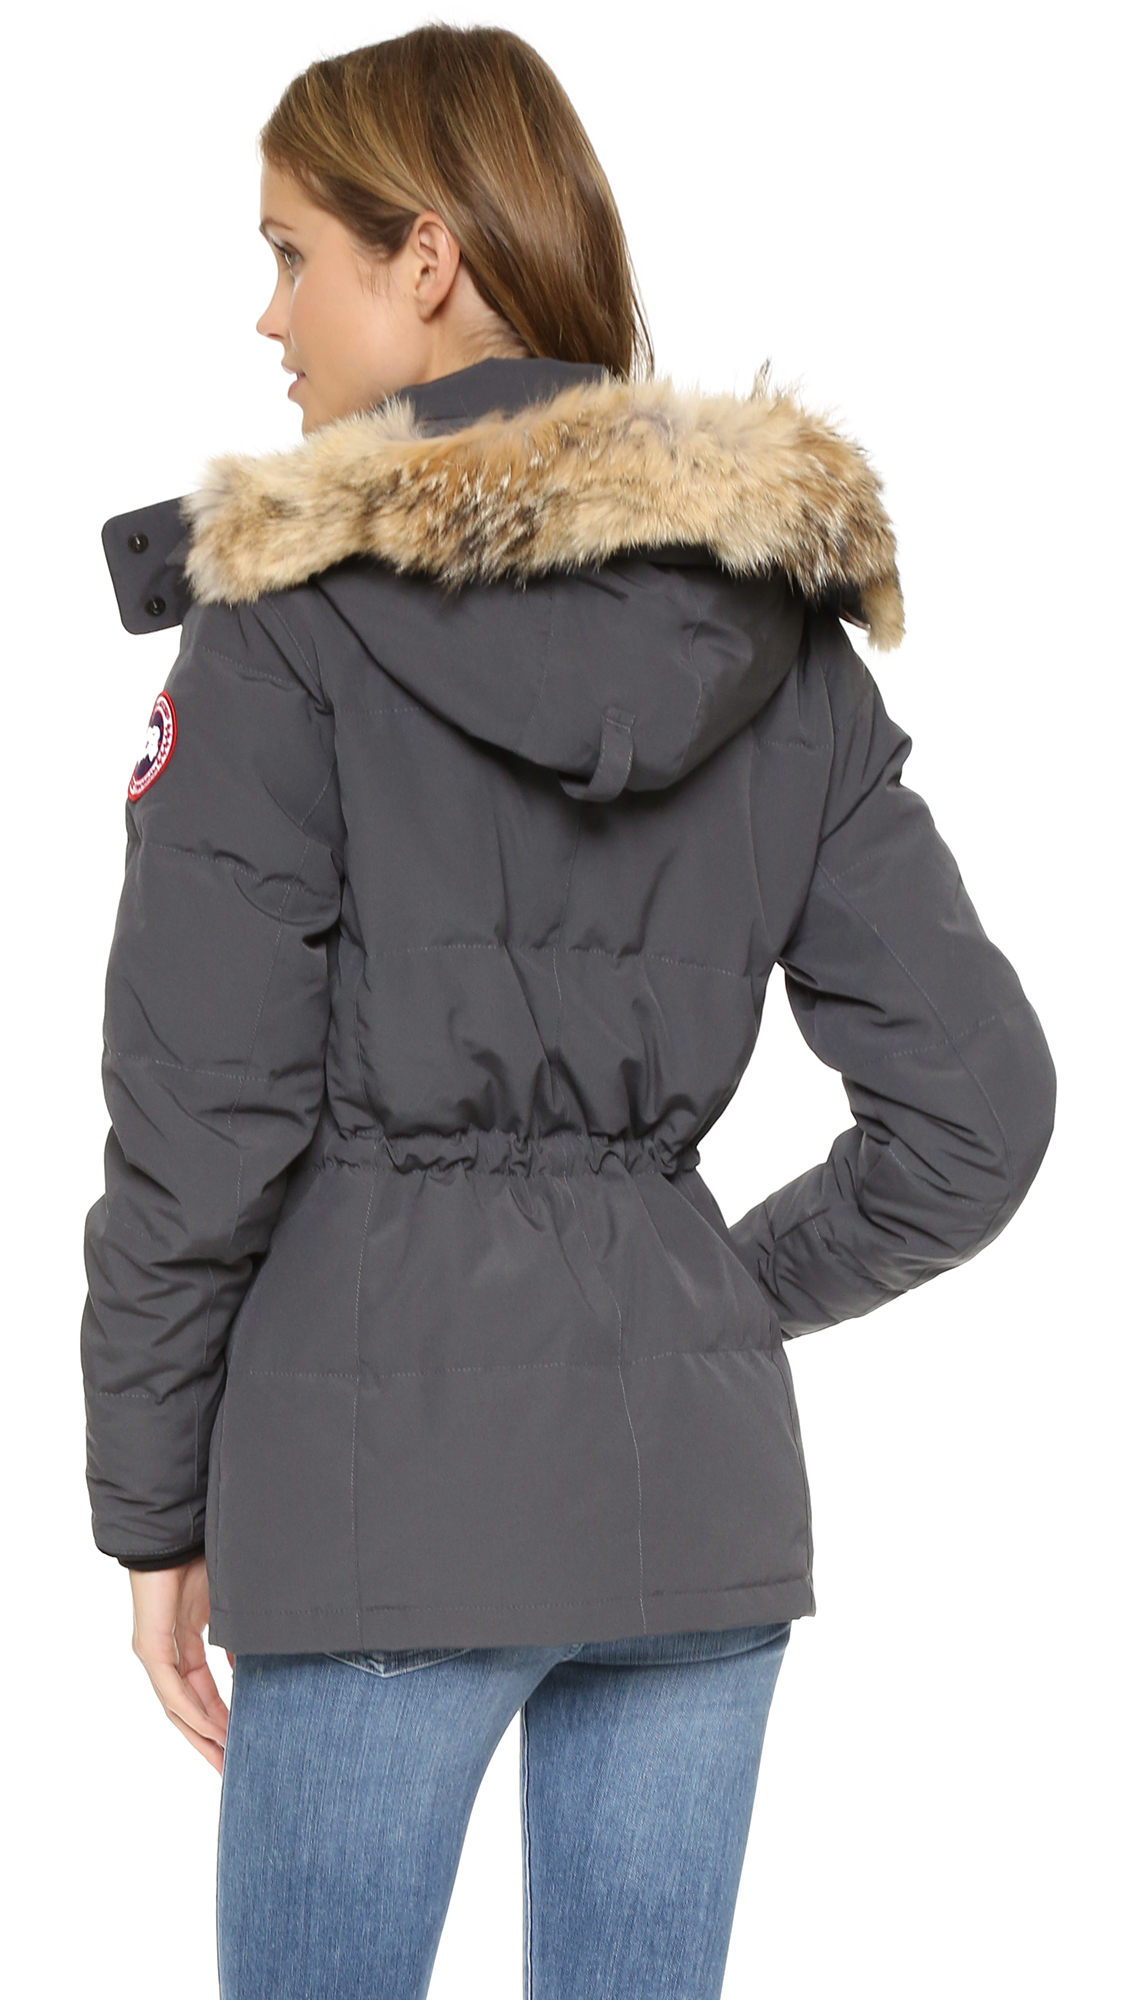 80084d96c991 Canada Goose Chelsea Parka - Graphite in Gray - Lyst